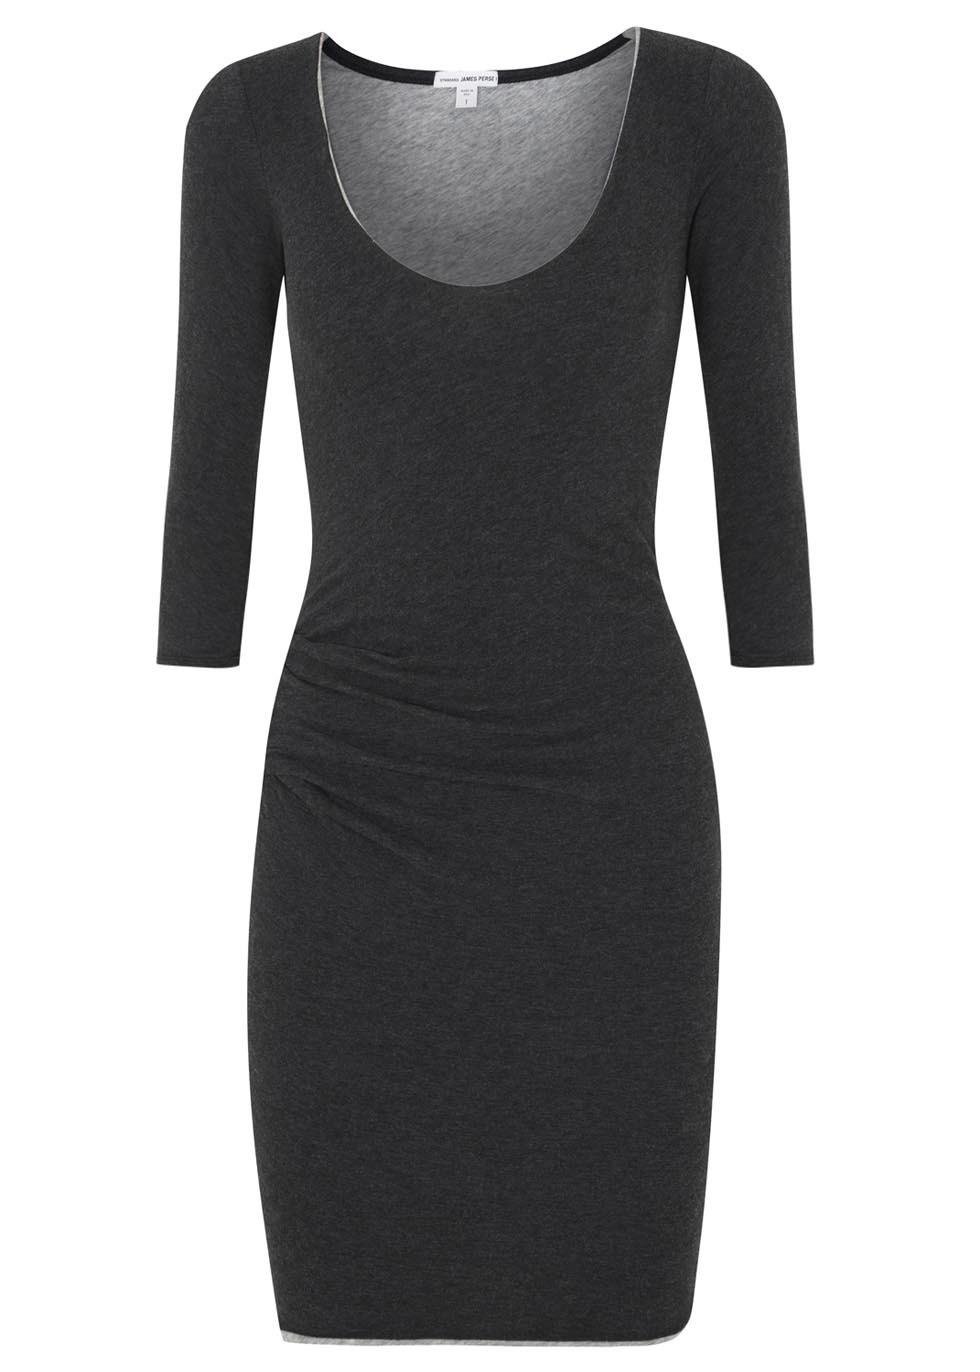 Grey Gathered Jersey Dress - length: mid thigh; fit: tight; pattern: plain; style: bodycon; predominant colour: charcoal; secondary colour: mid grey; occasions: casual, creative work; neckline: scoop; fibres: cotton - mix; hip detail: ruching/gathering at hip; sleeve length: half sleeve; sleeve style: standard; texture group: jersey - clingy; pattern type: fabric; season: s/s 2014